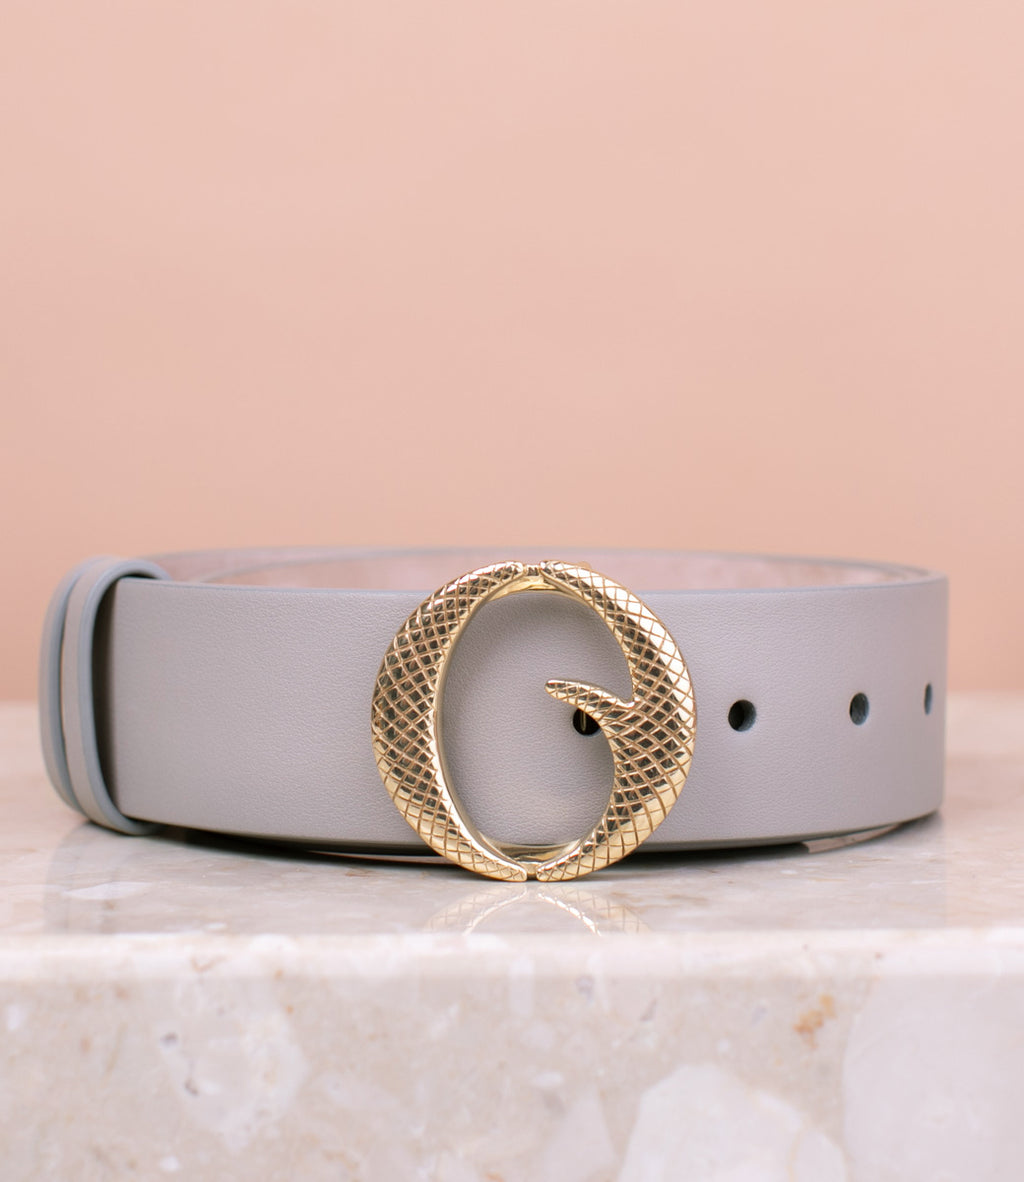 Medium Brass & Italian Stone Belt